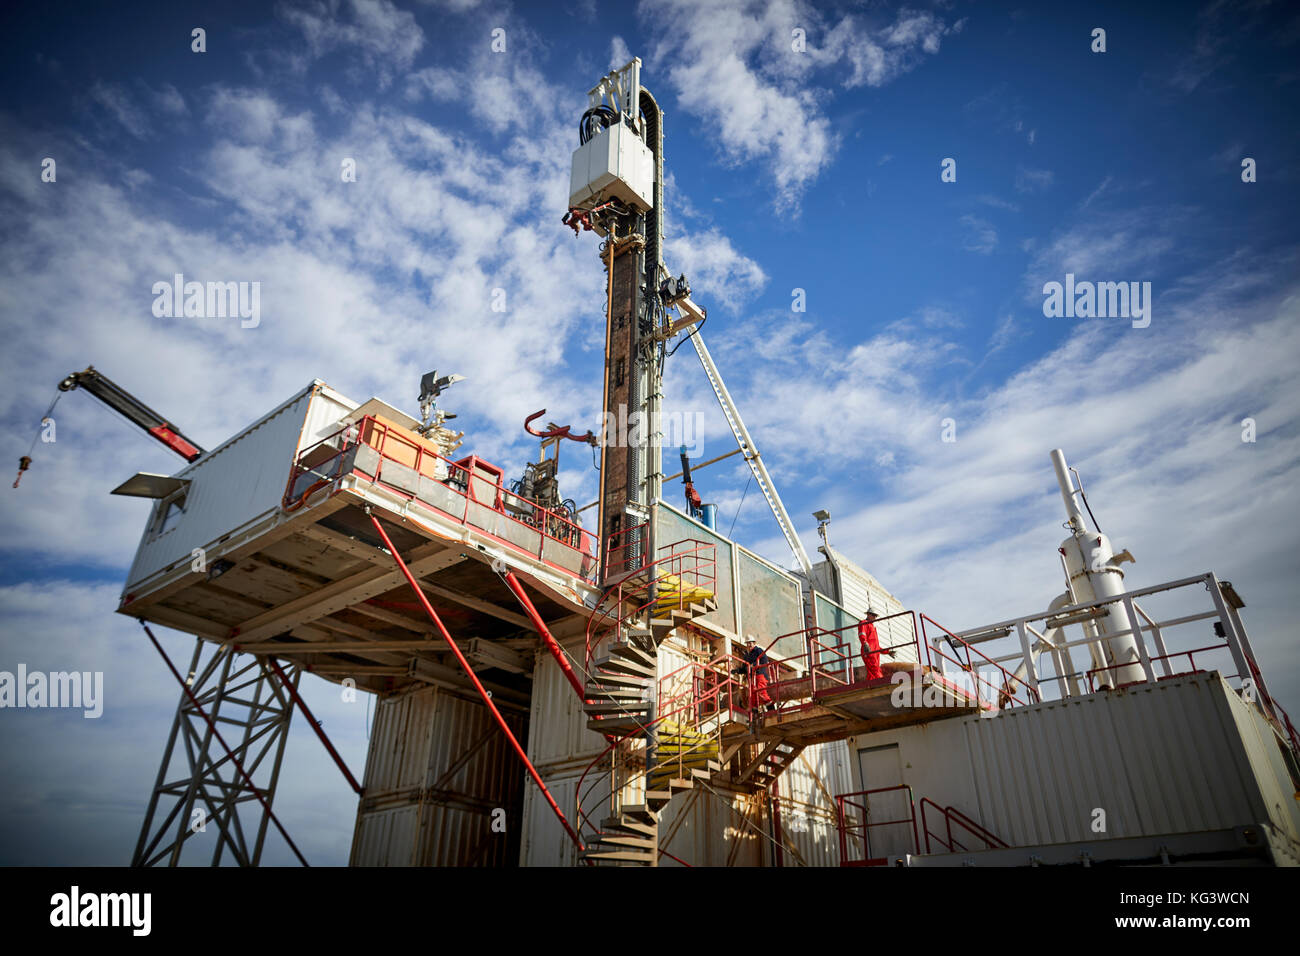 Fracking firm Cuadrilla drilling for shale gas in Lancashire, pictured The drilling well - Stock Image